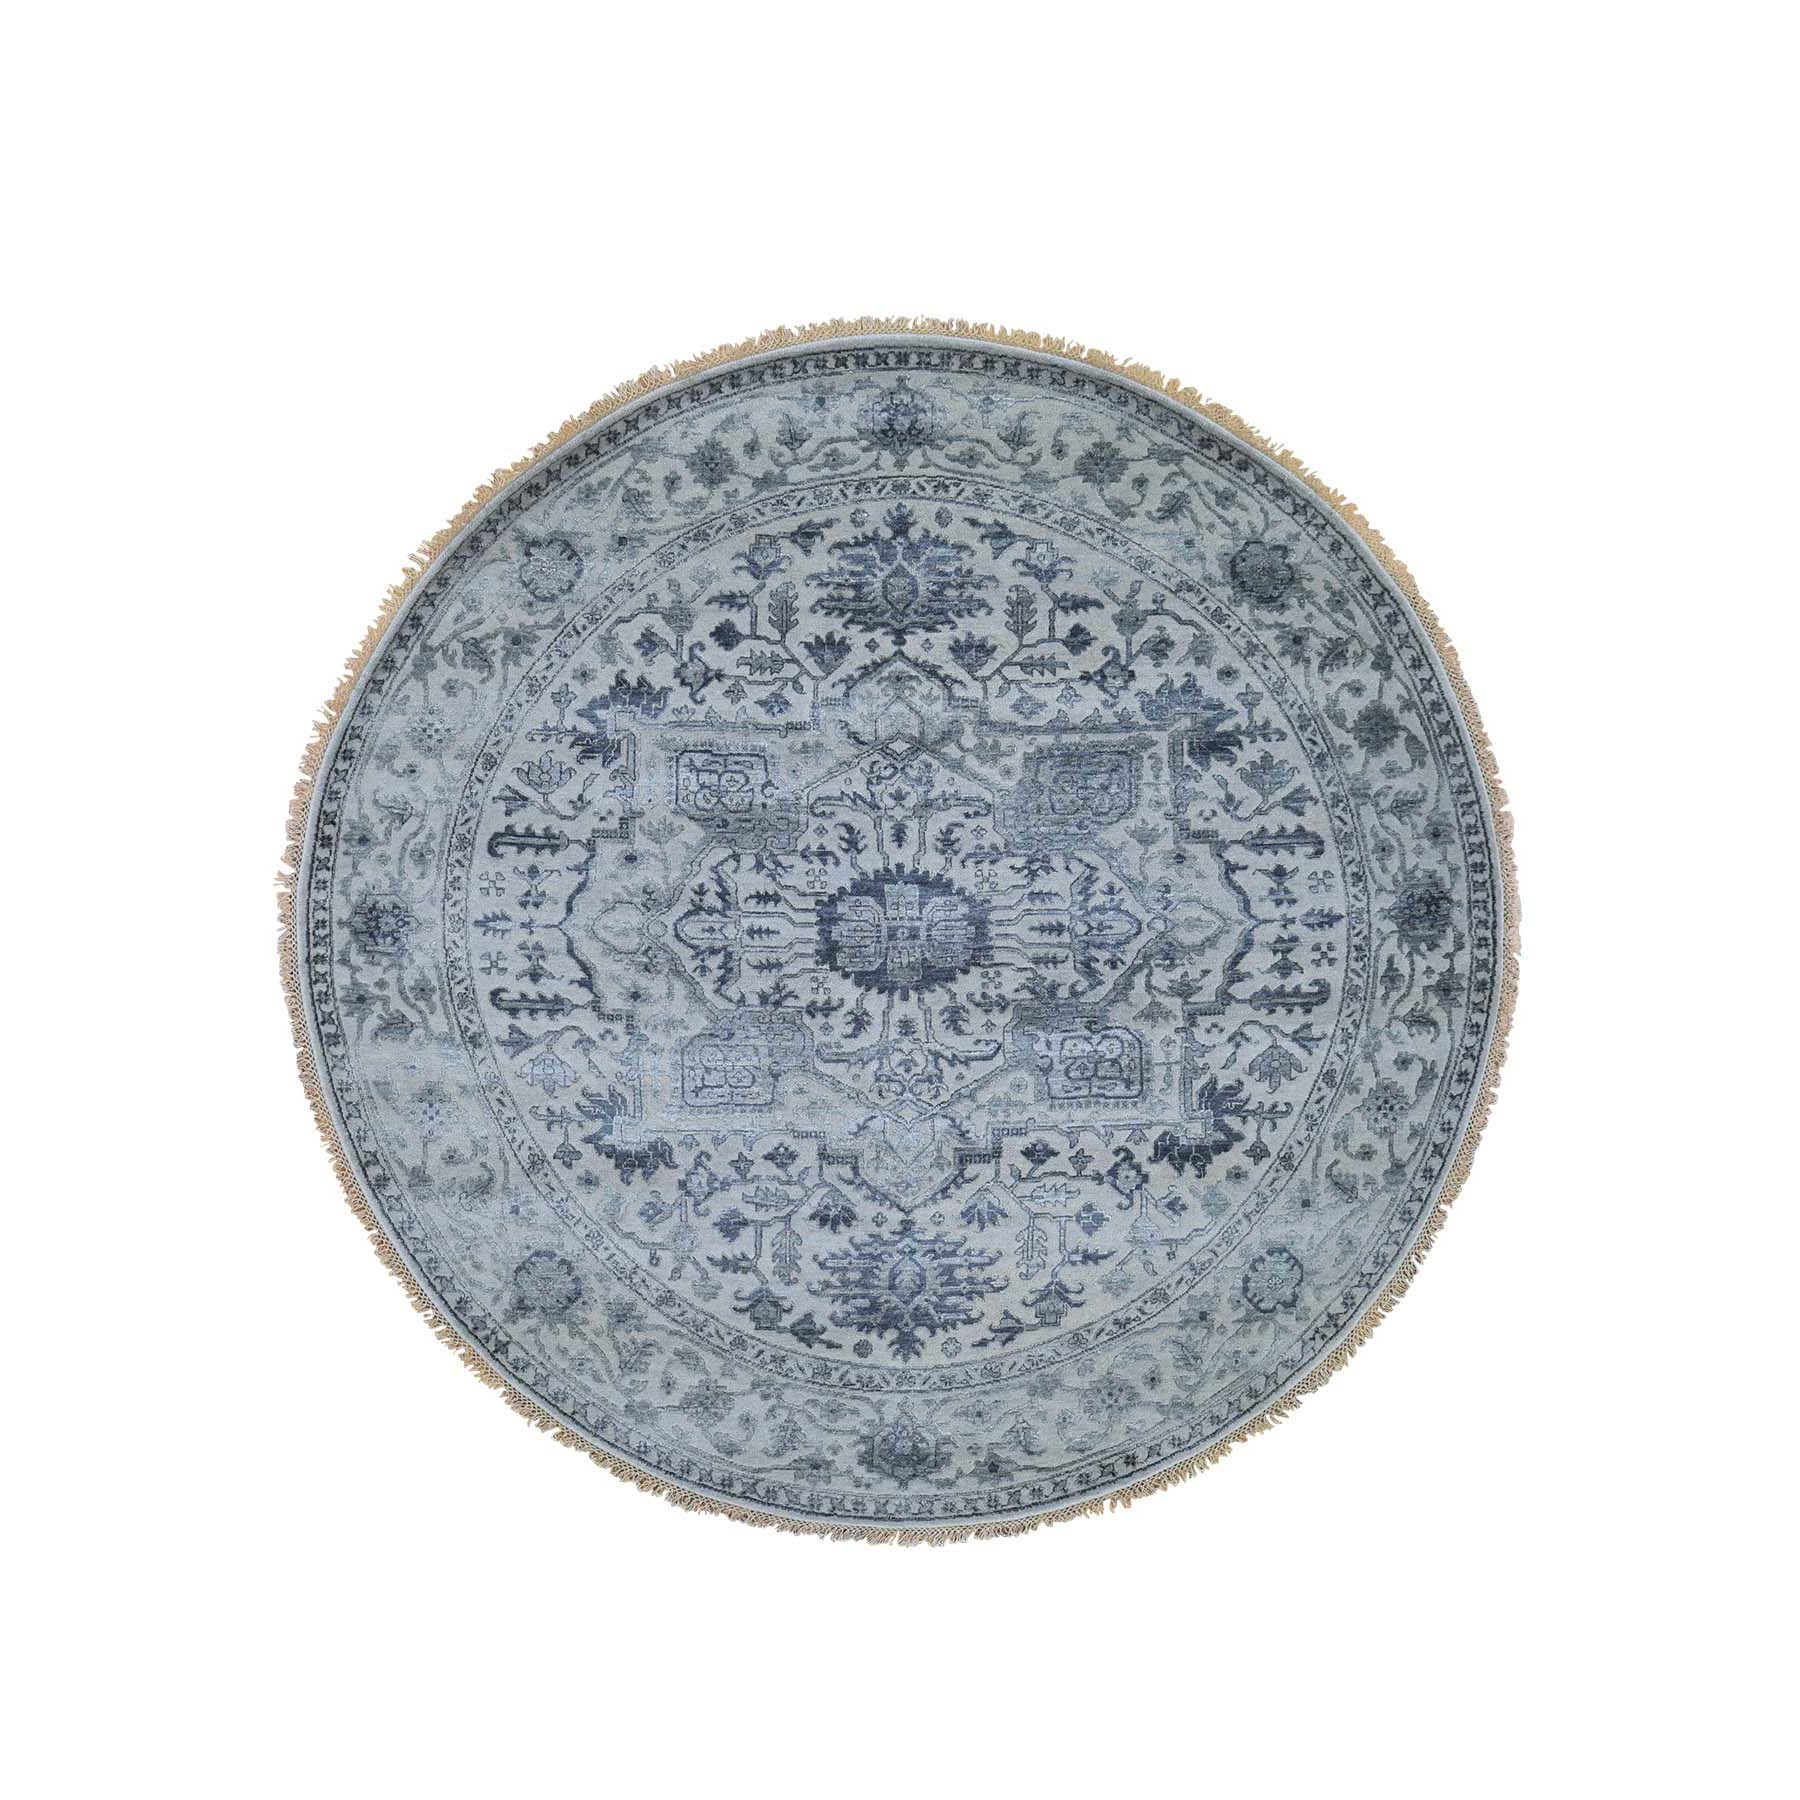 10'X10' Silver Heriz Design Wool And Silk Hi-Lo Pile Round Hand-Knotted Oriental Rug moadd9a0